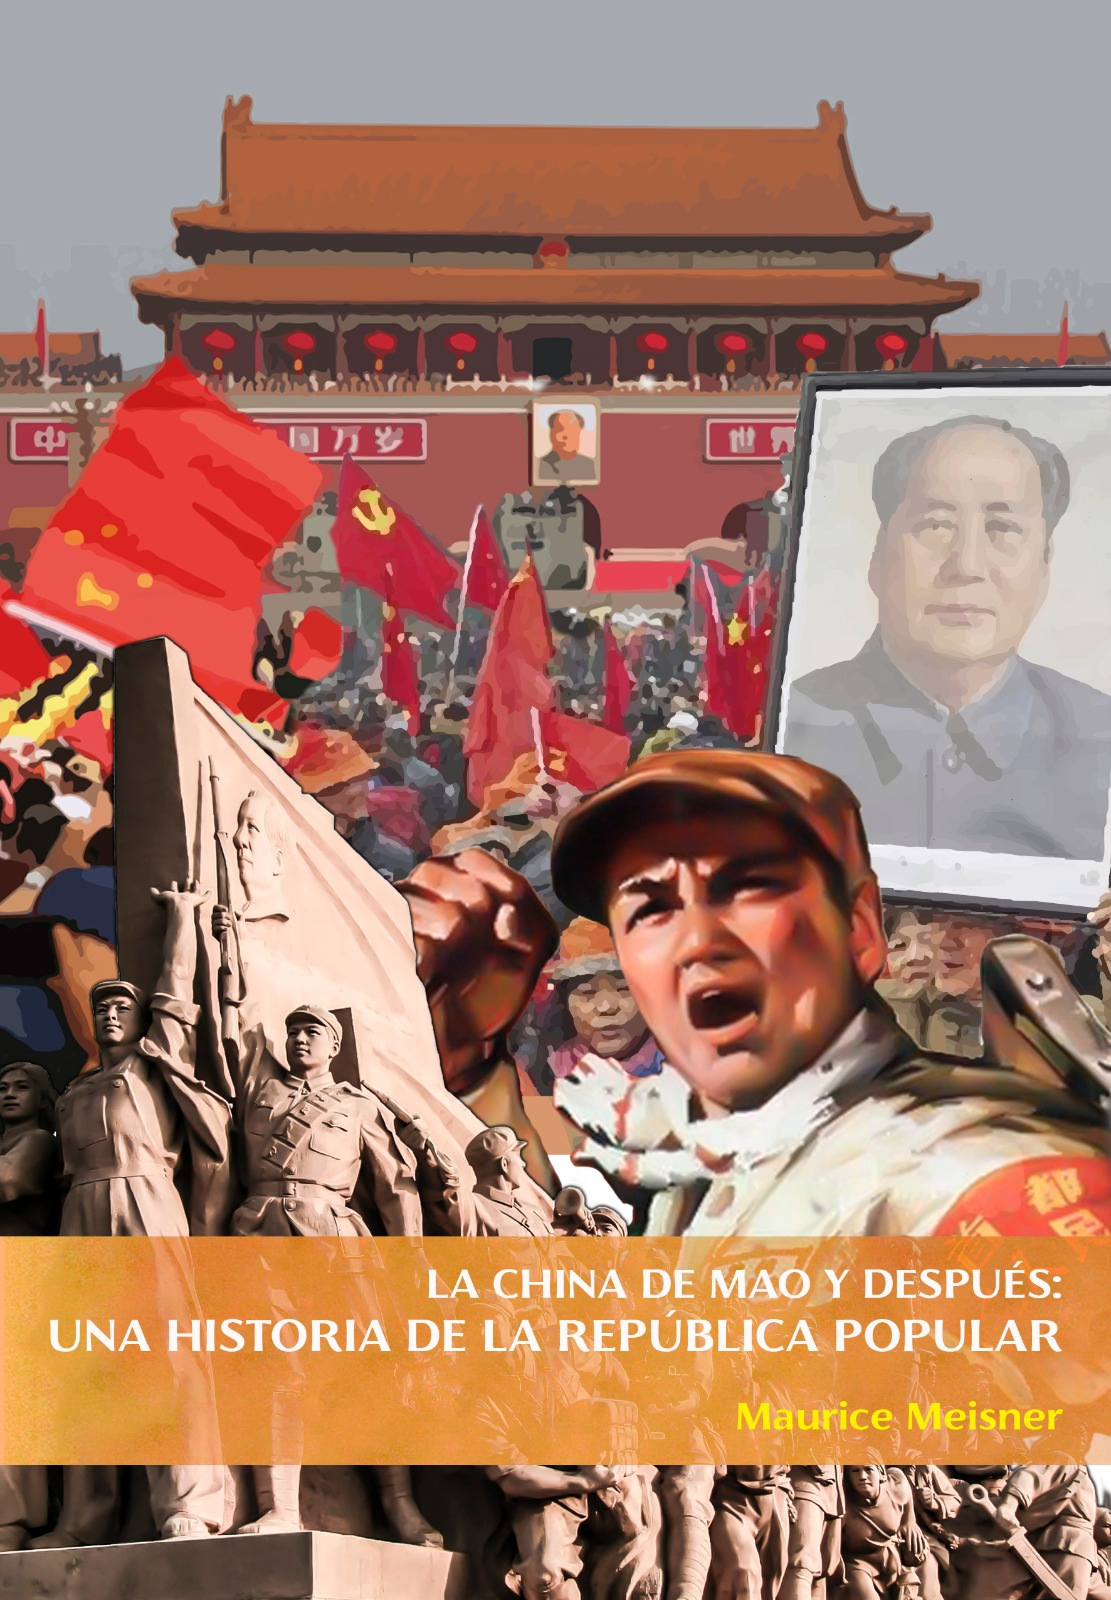 La china de Mao y despues de Meisner